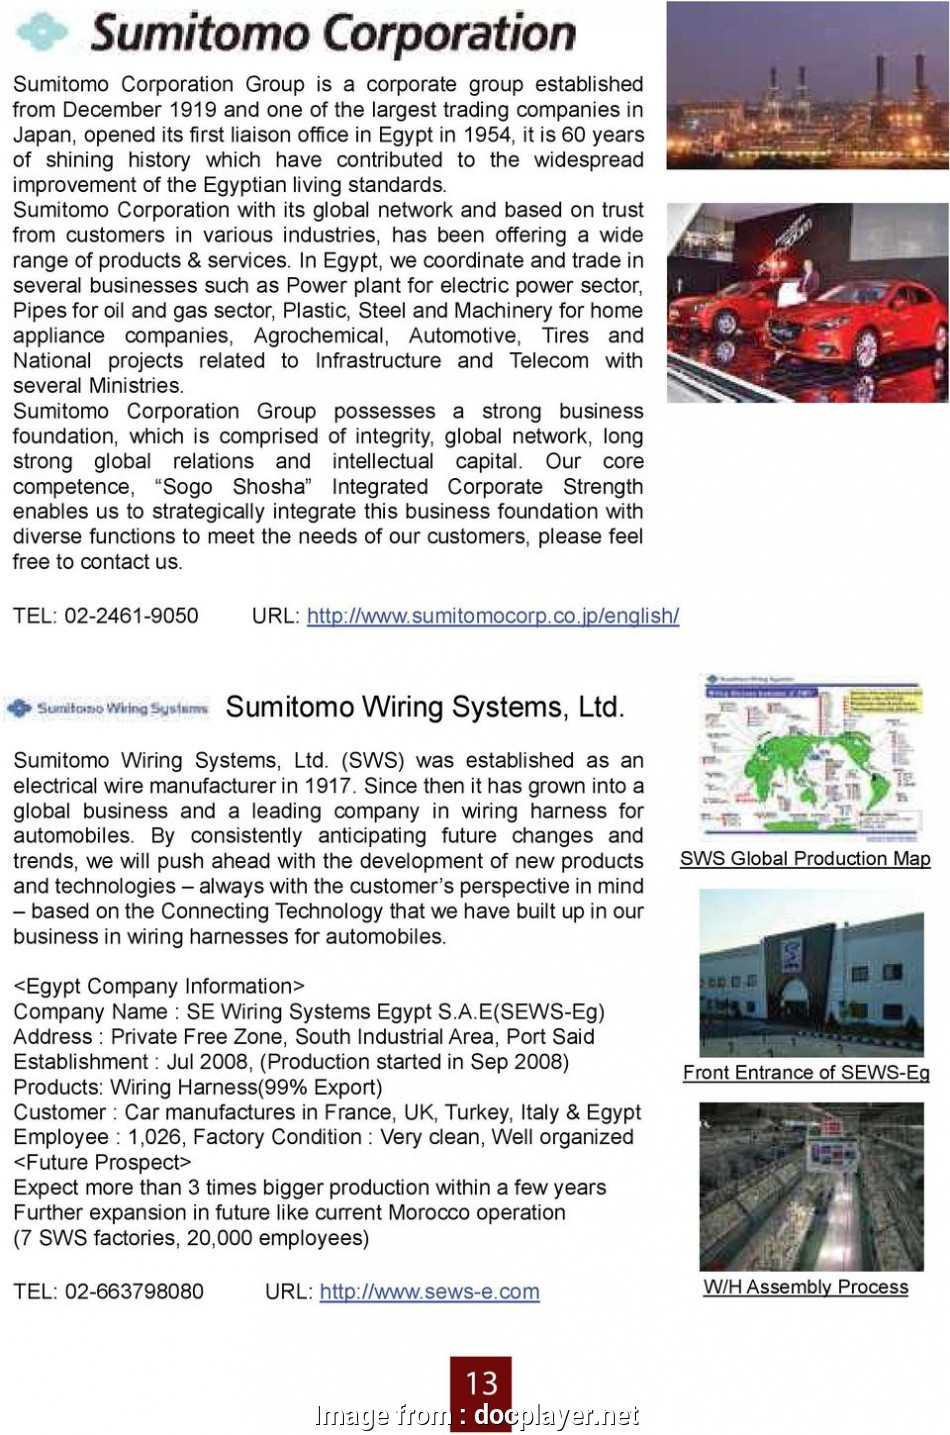 Sumitomo Electric Wiring System  Ltd Creative Sumitomo Corporation With  Global Network  Based